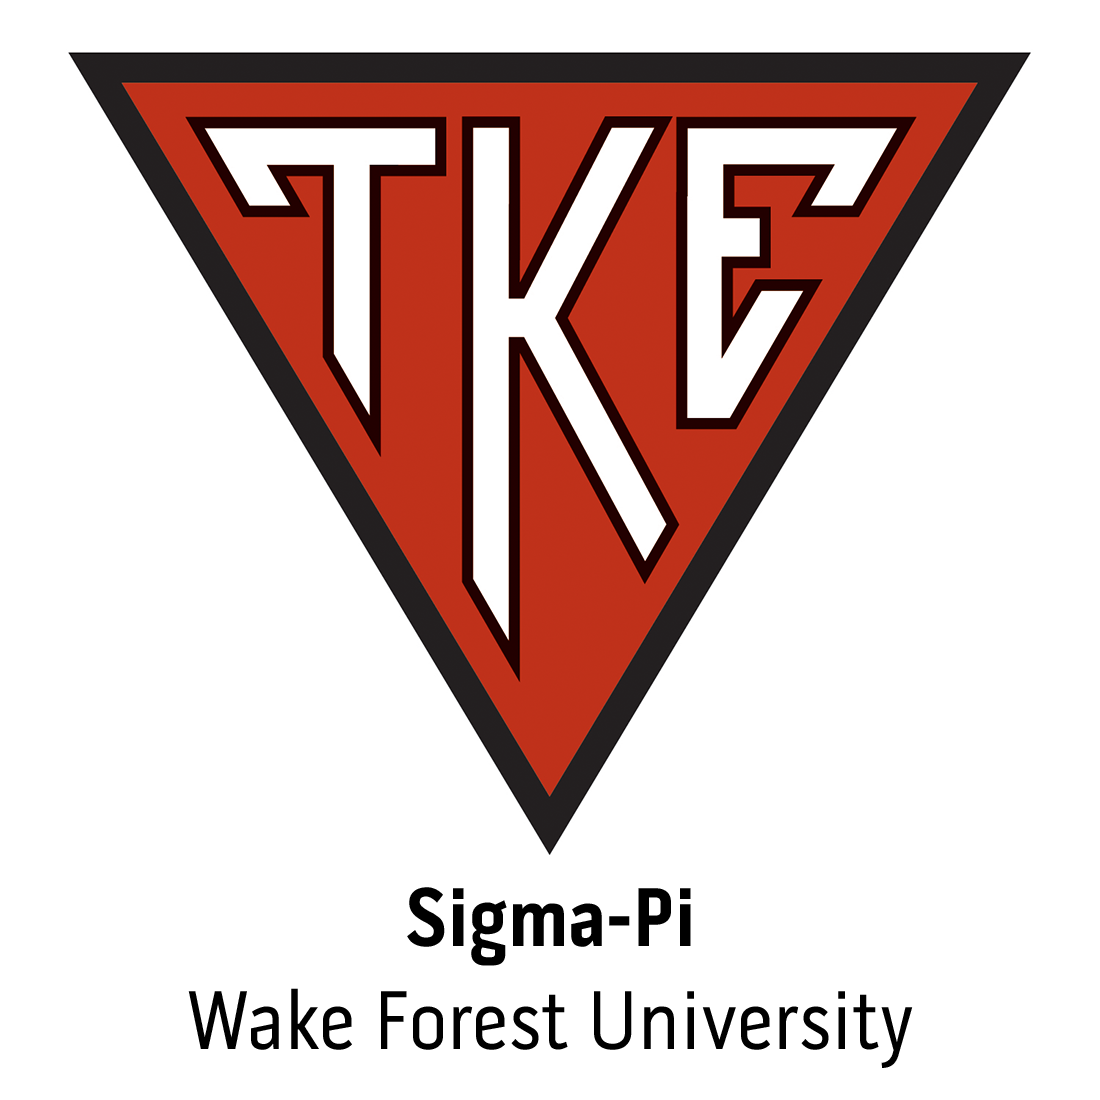 Sigma-Pi Chapter at Wake Forest University